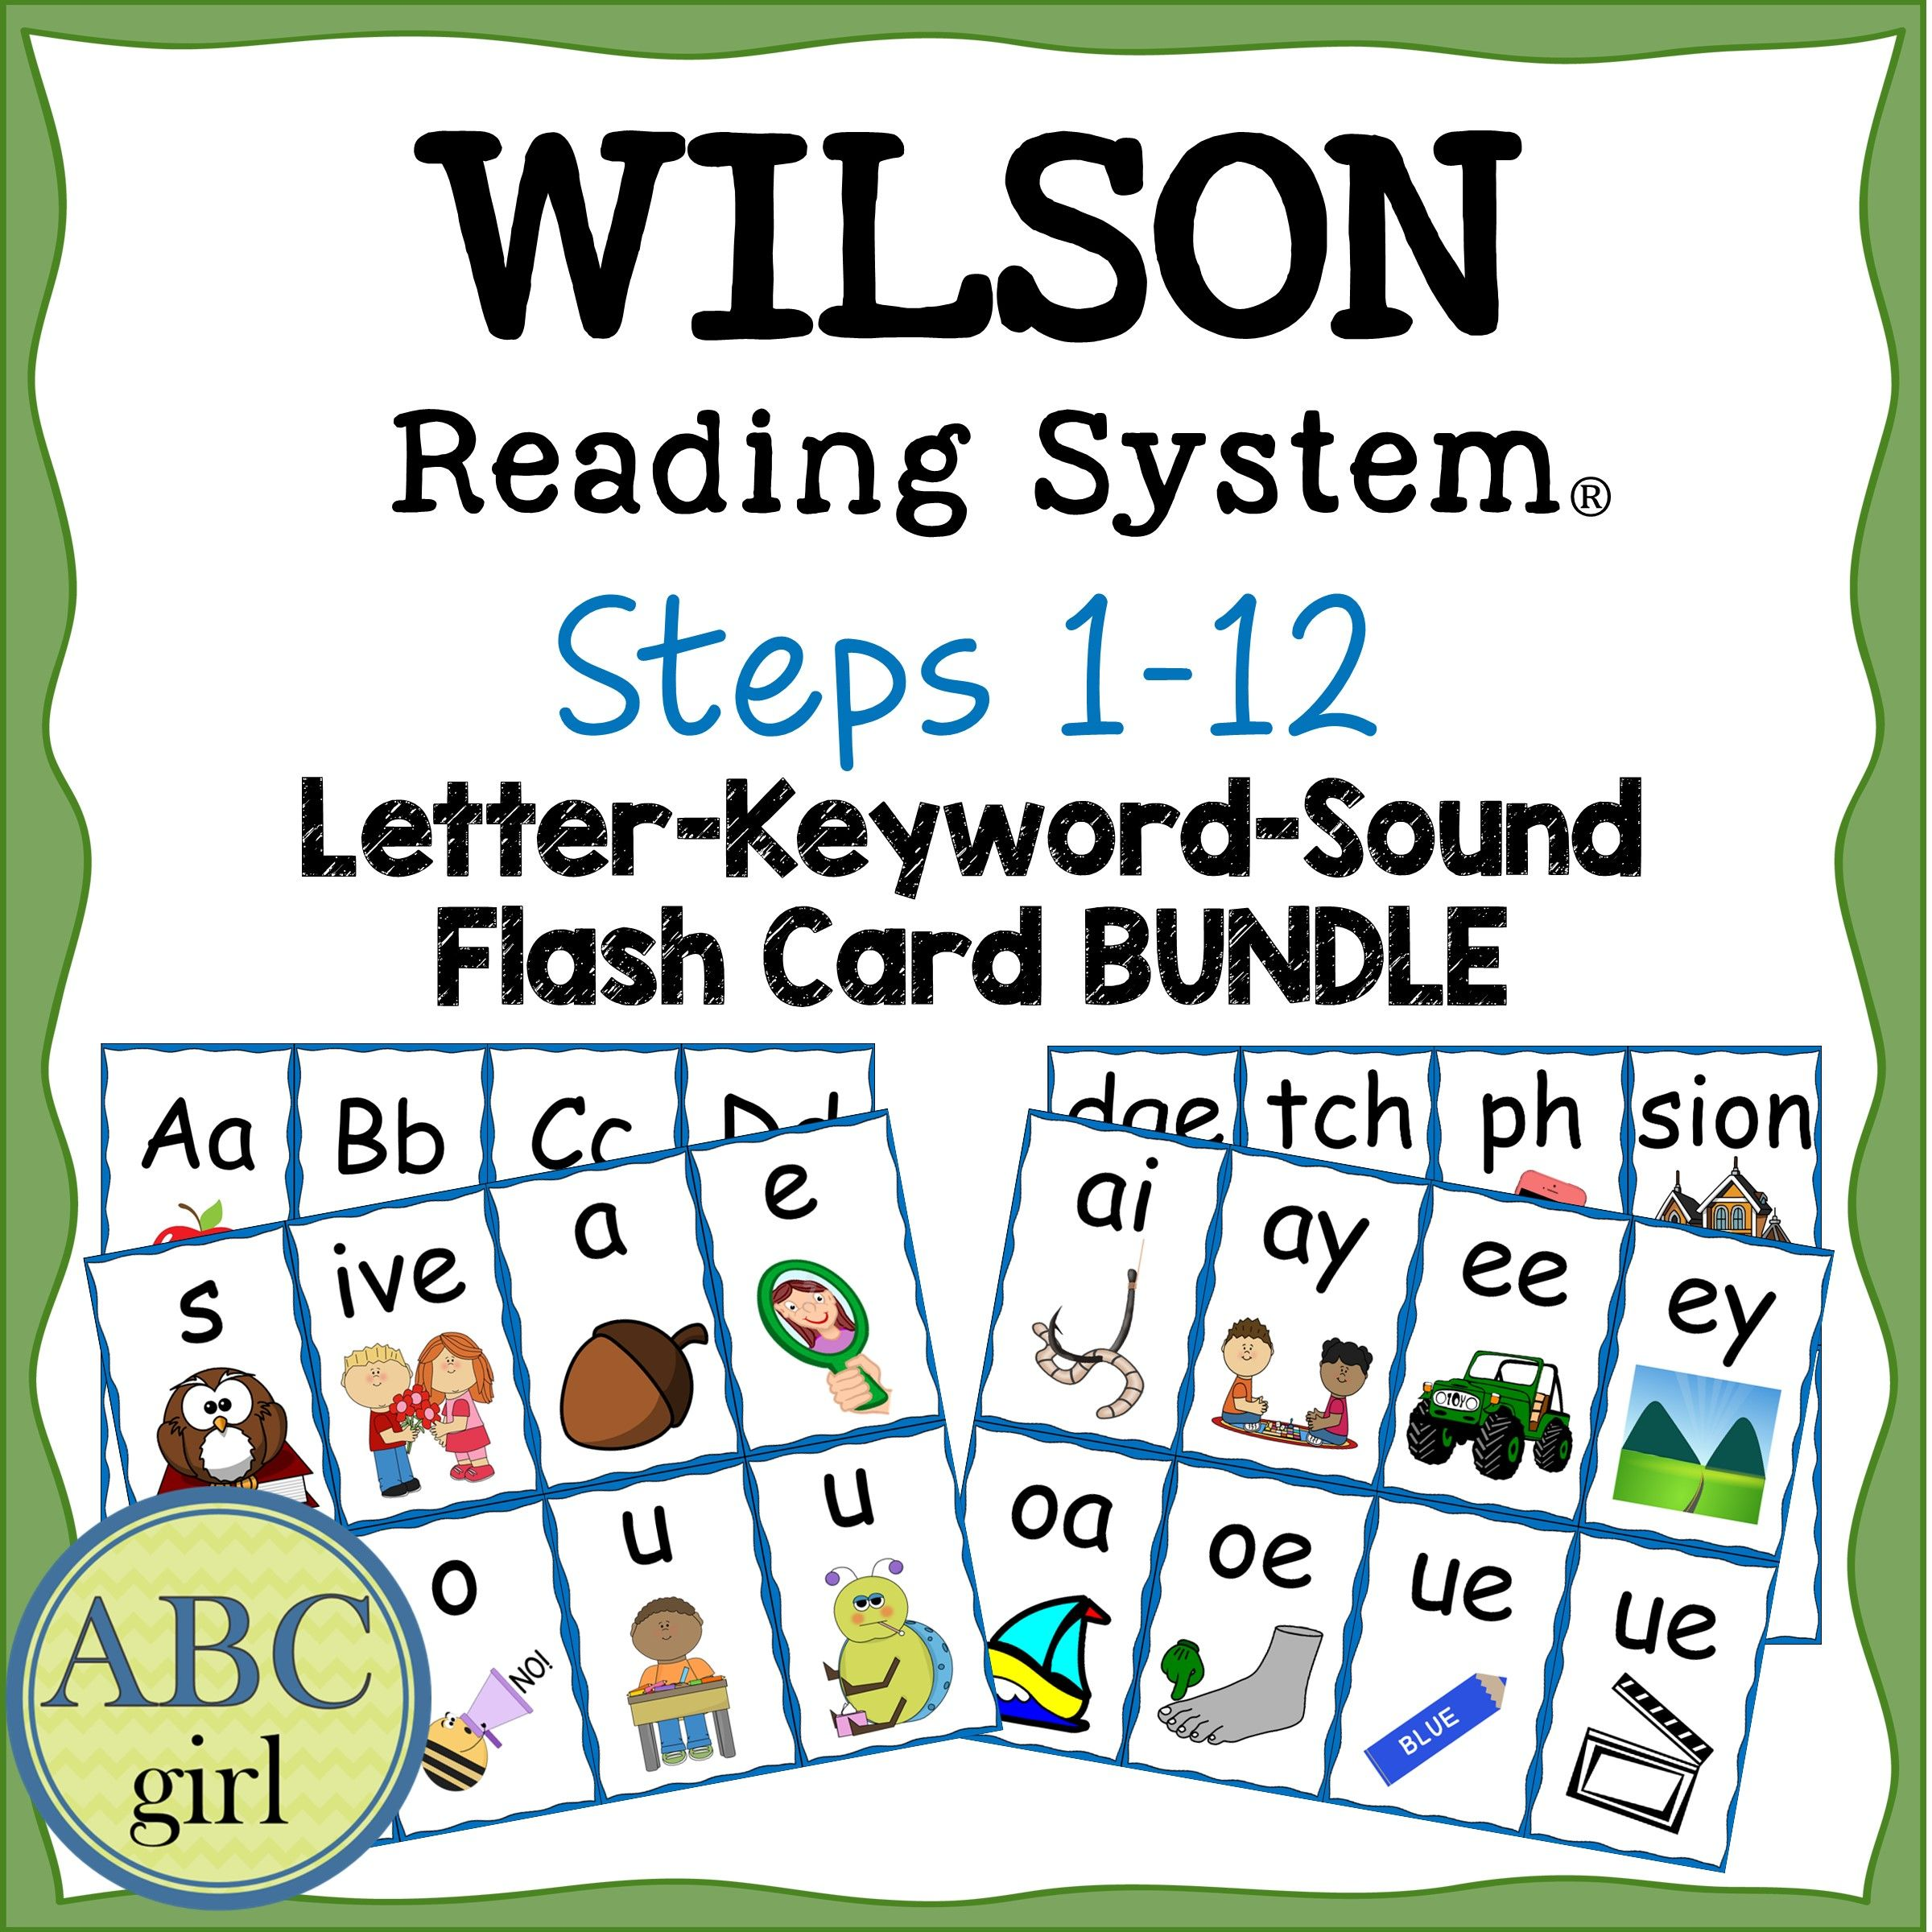 Worksheets Flash Card For Reading wilson reading system steps 1 12 letter keyword sound flash card aligned and flashcards reading